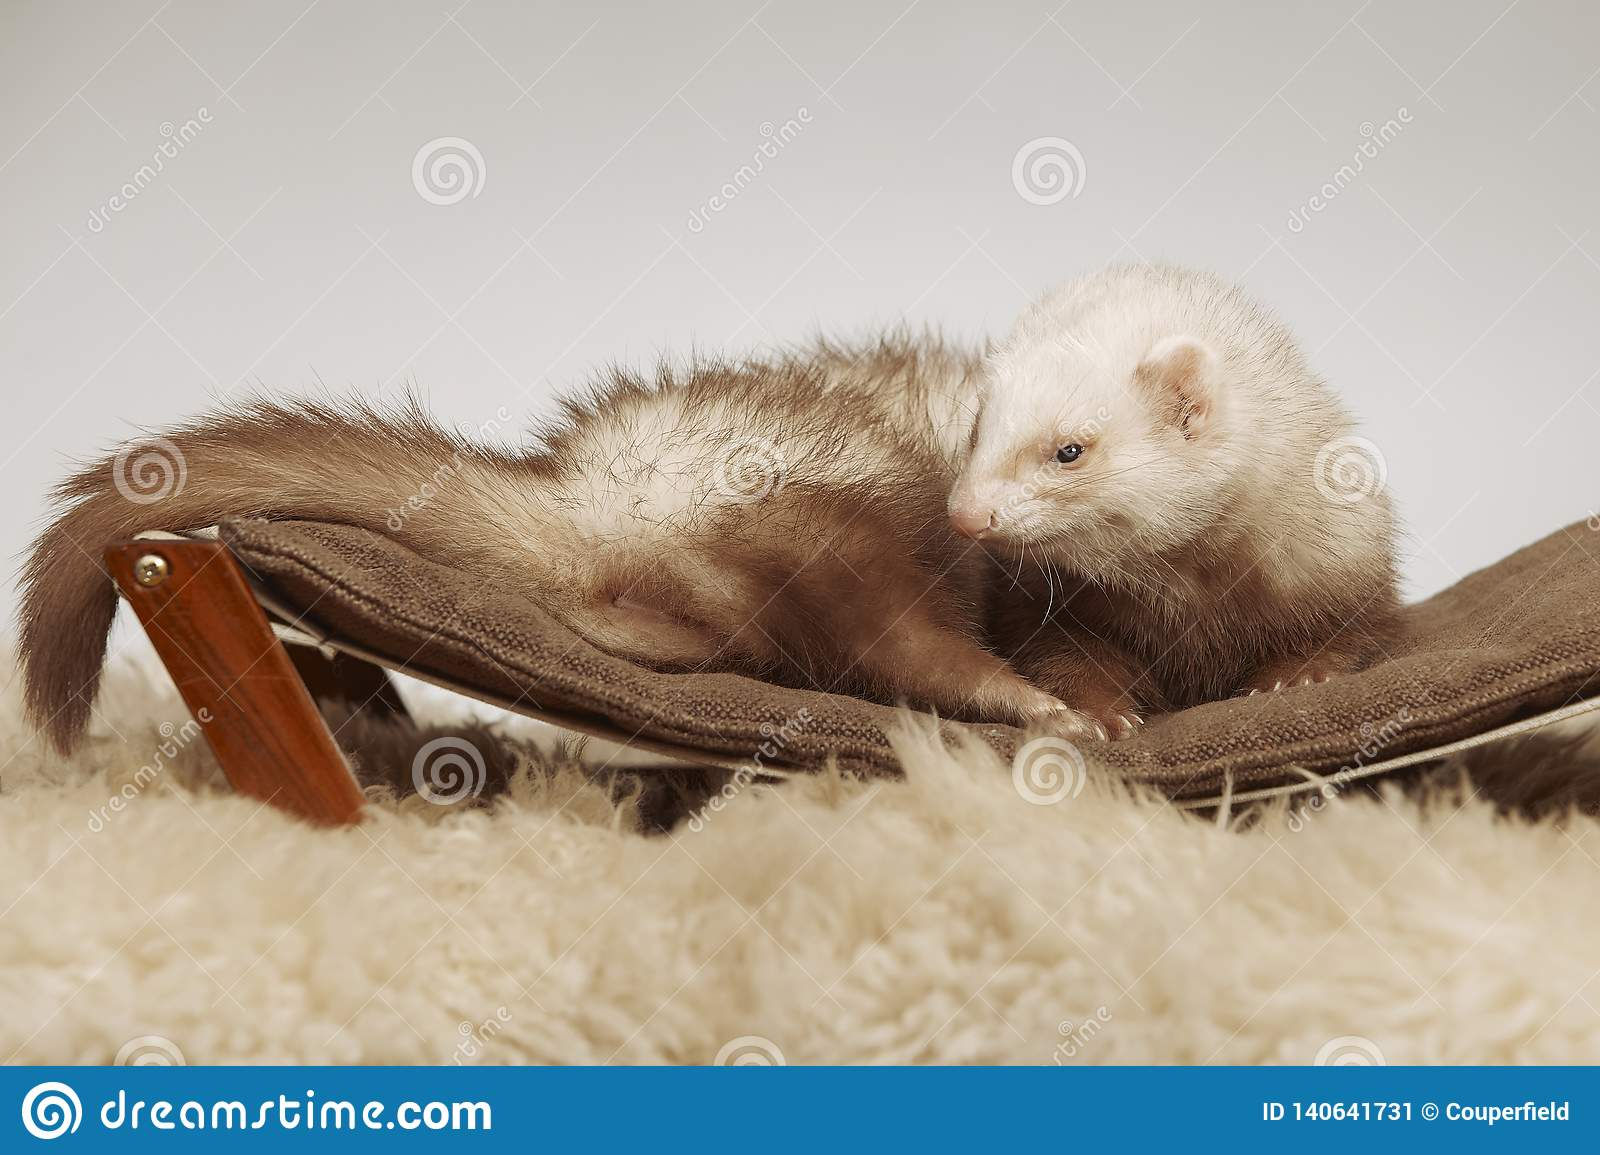 Male ferret of champagne color sitting on sofa